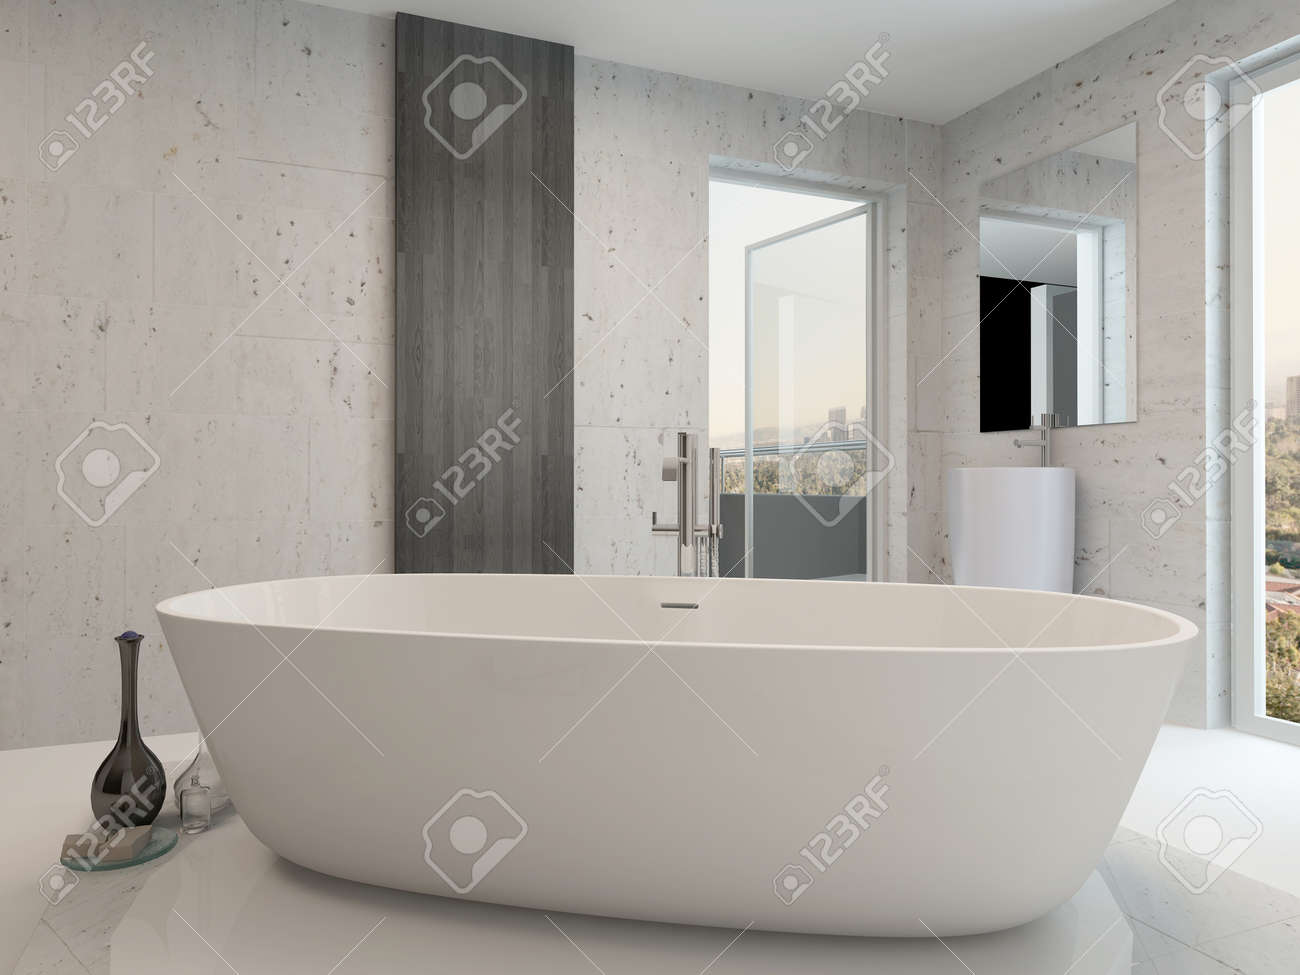 Pure White Modern Luxury Bathroom Interior With Standalone Bathtub Stock  Photo   28772340